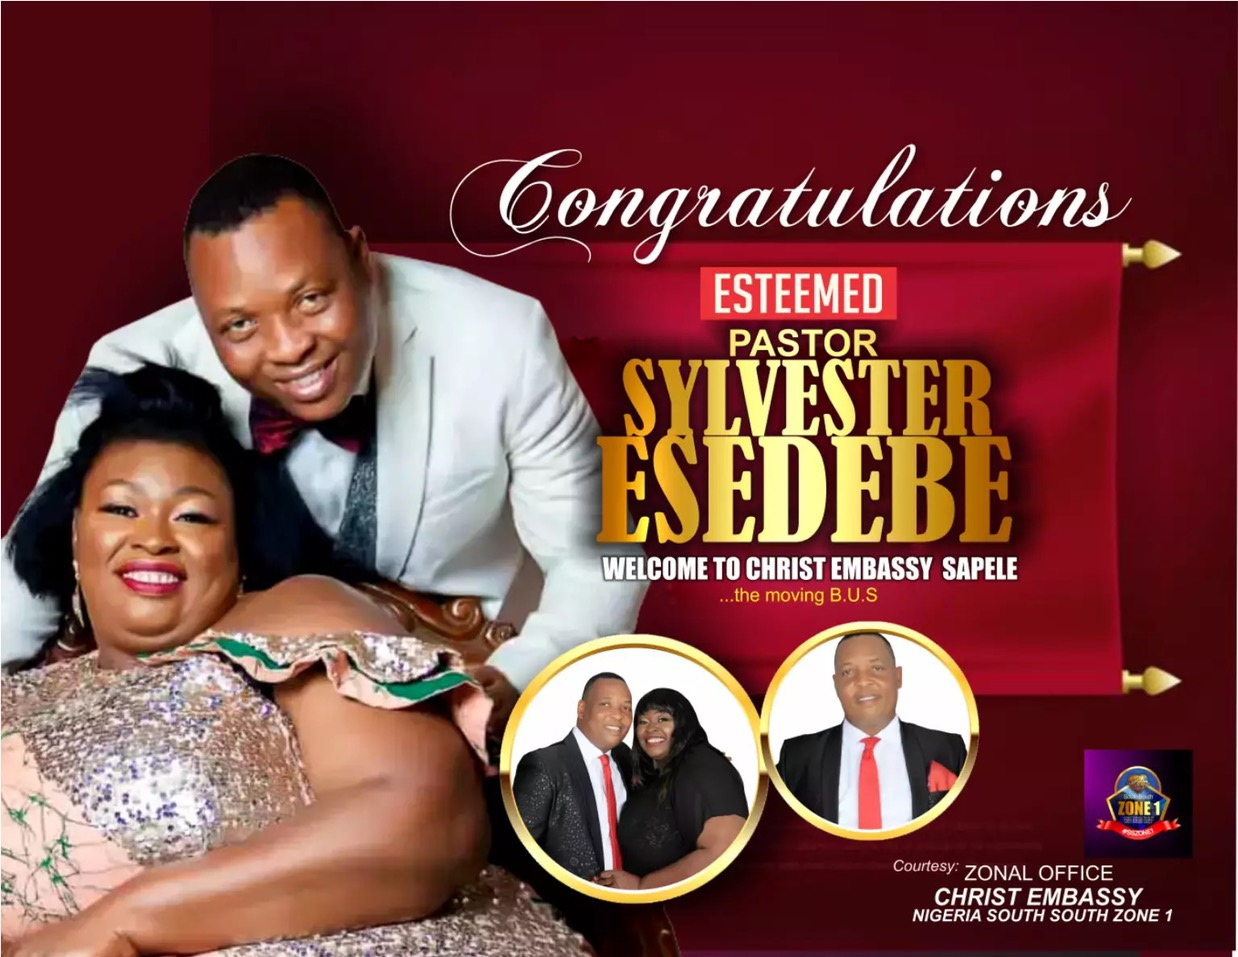 Welcome dear Pastors Sylvester and